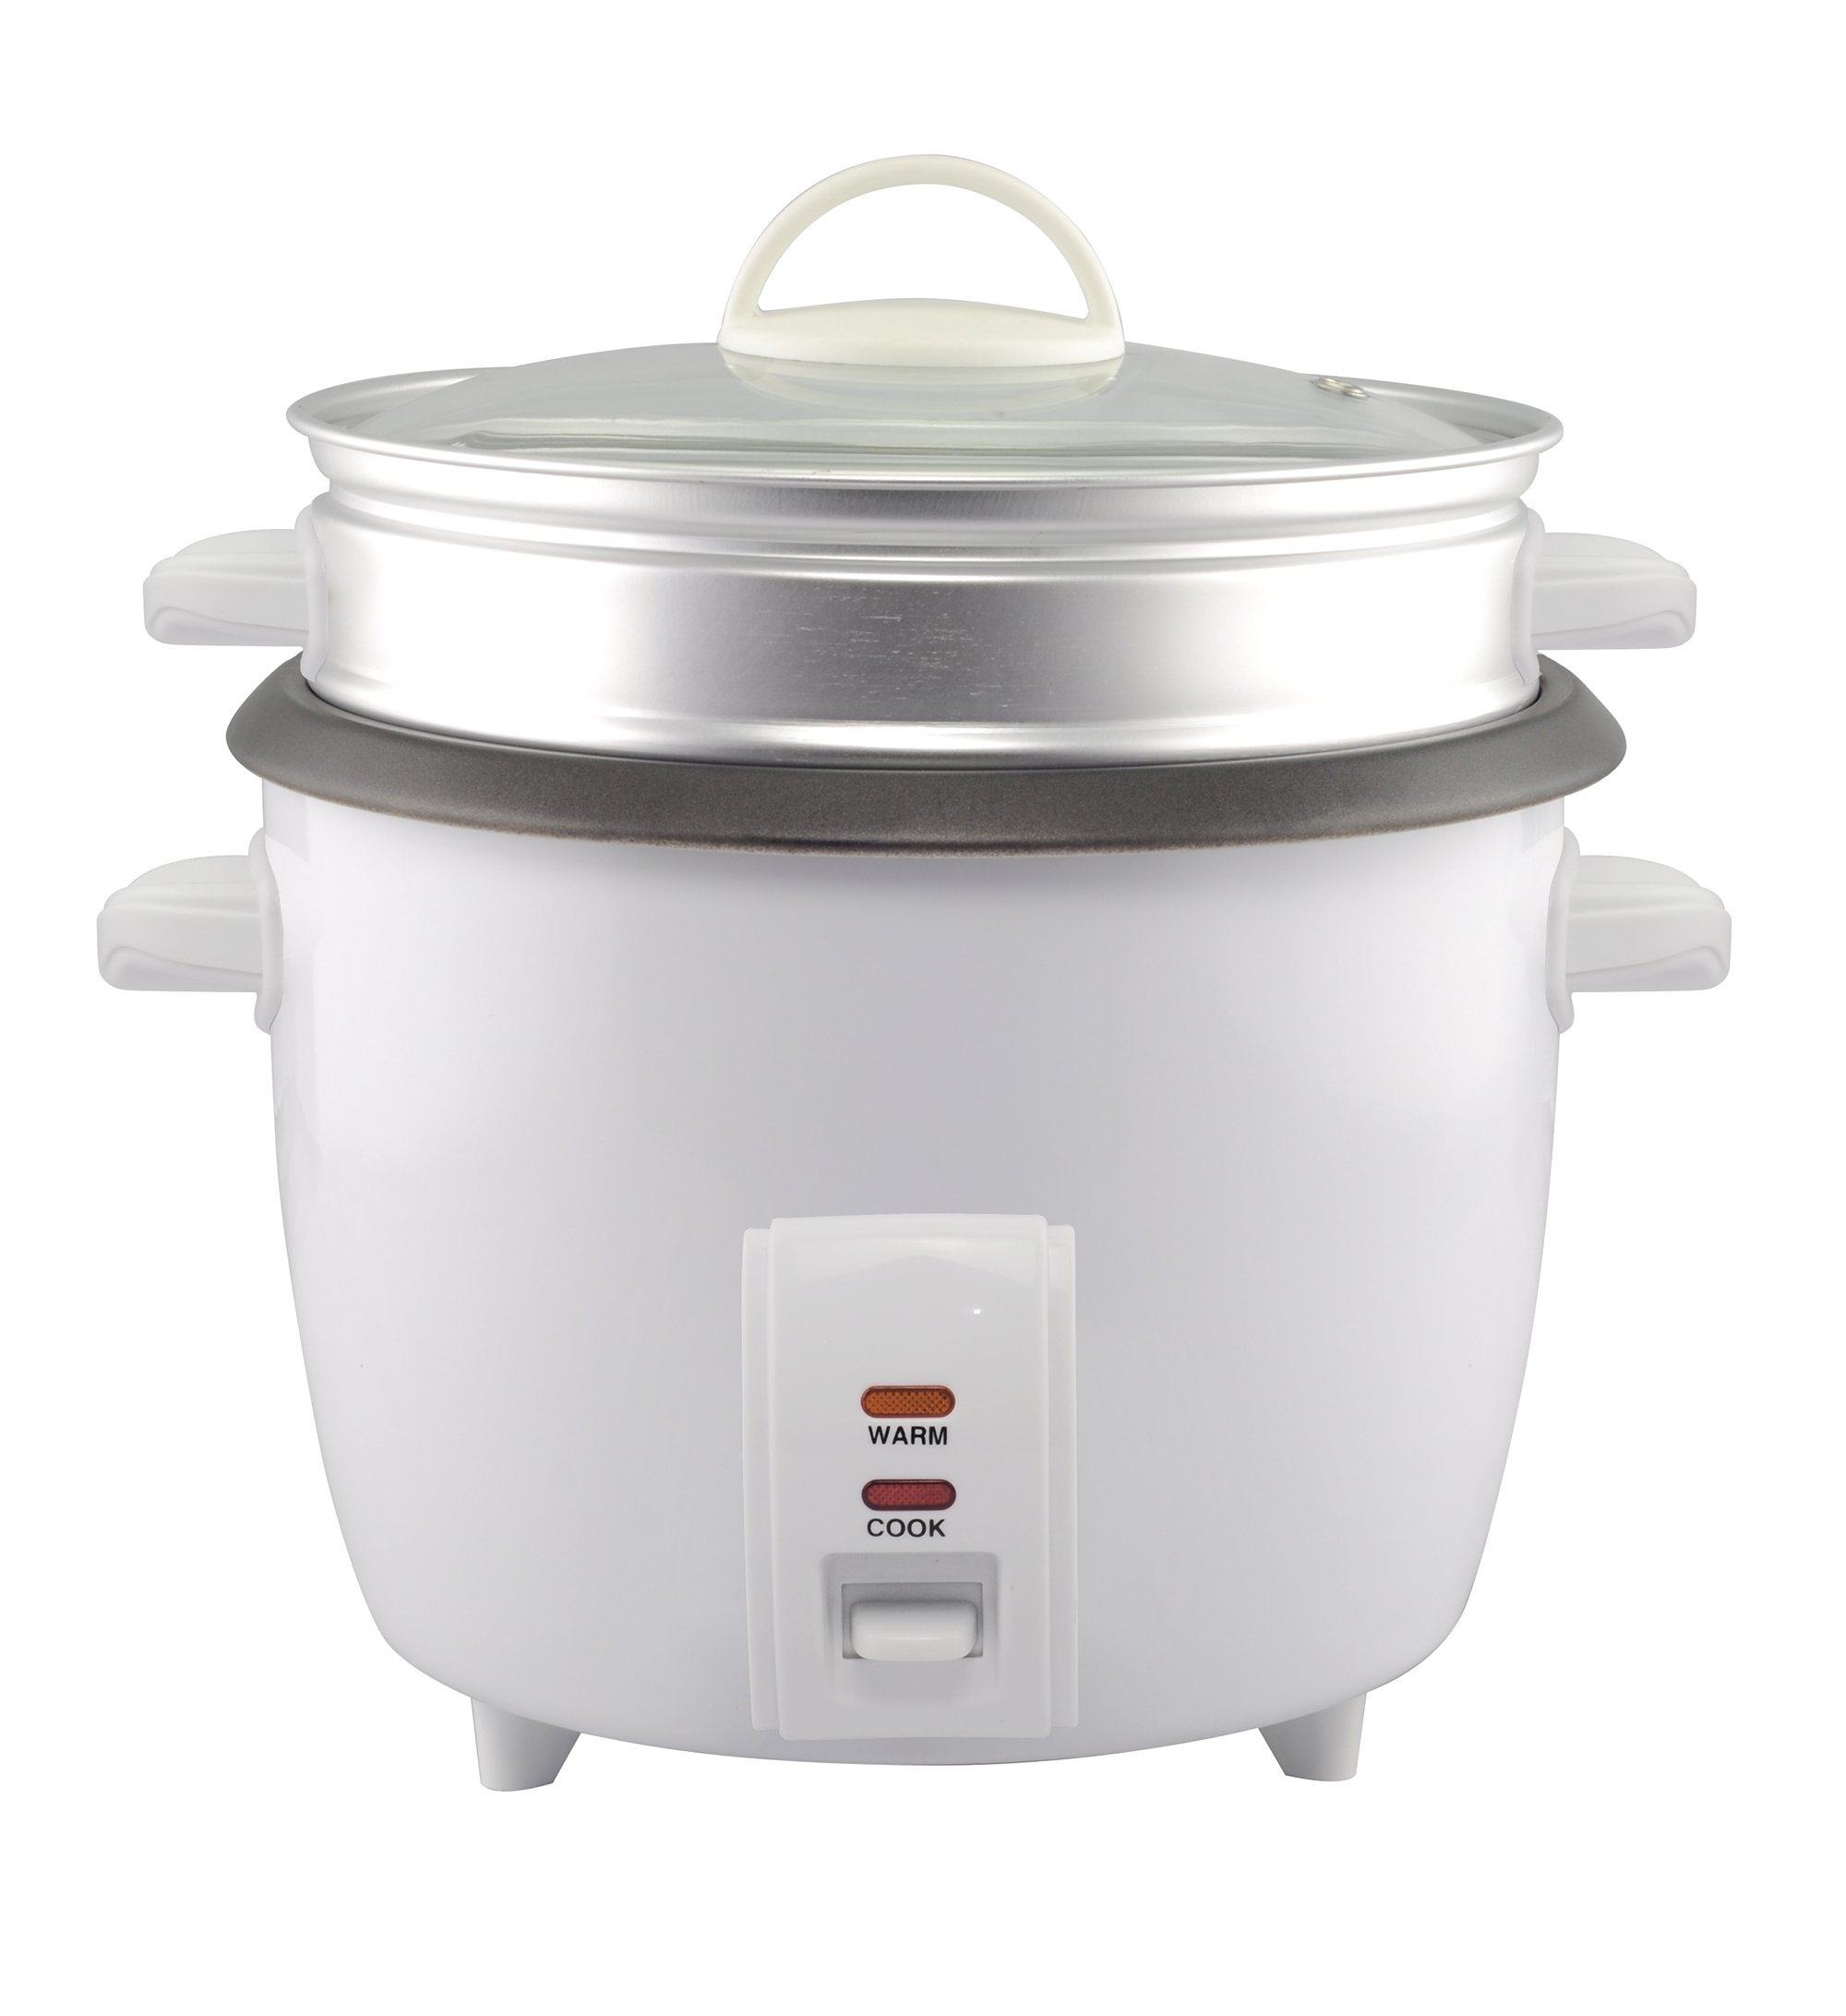 GForce Rice Cooker Aluminum Infused 1Liter/10 Cup Rice & Grain Cooker with Aluminum Vegetable Steam Tray - White